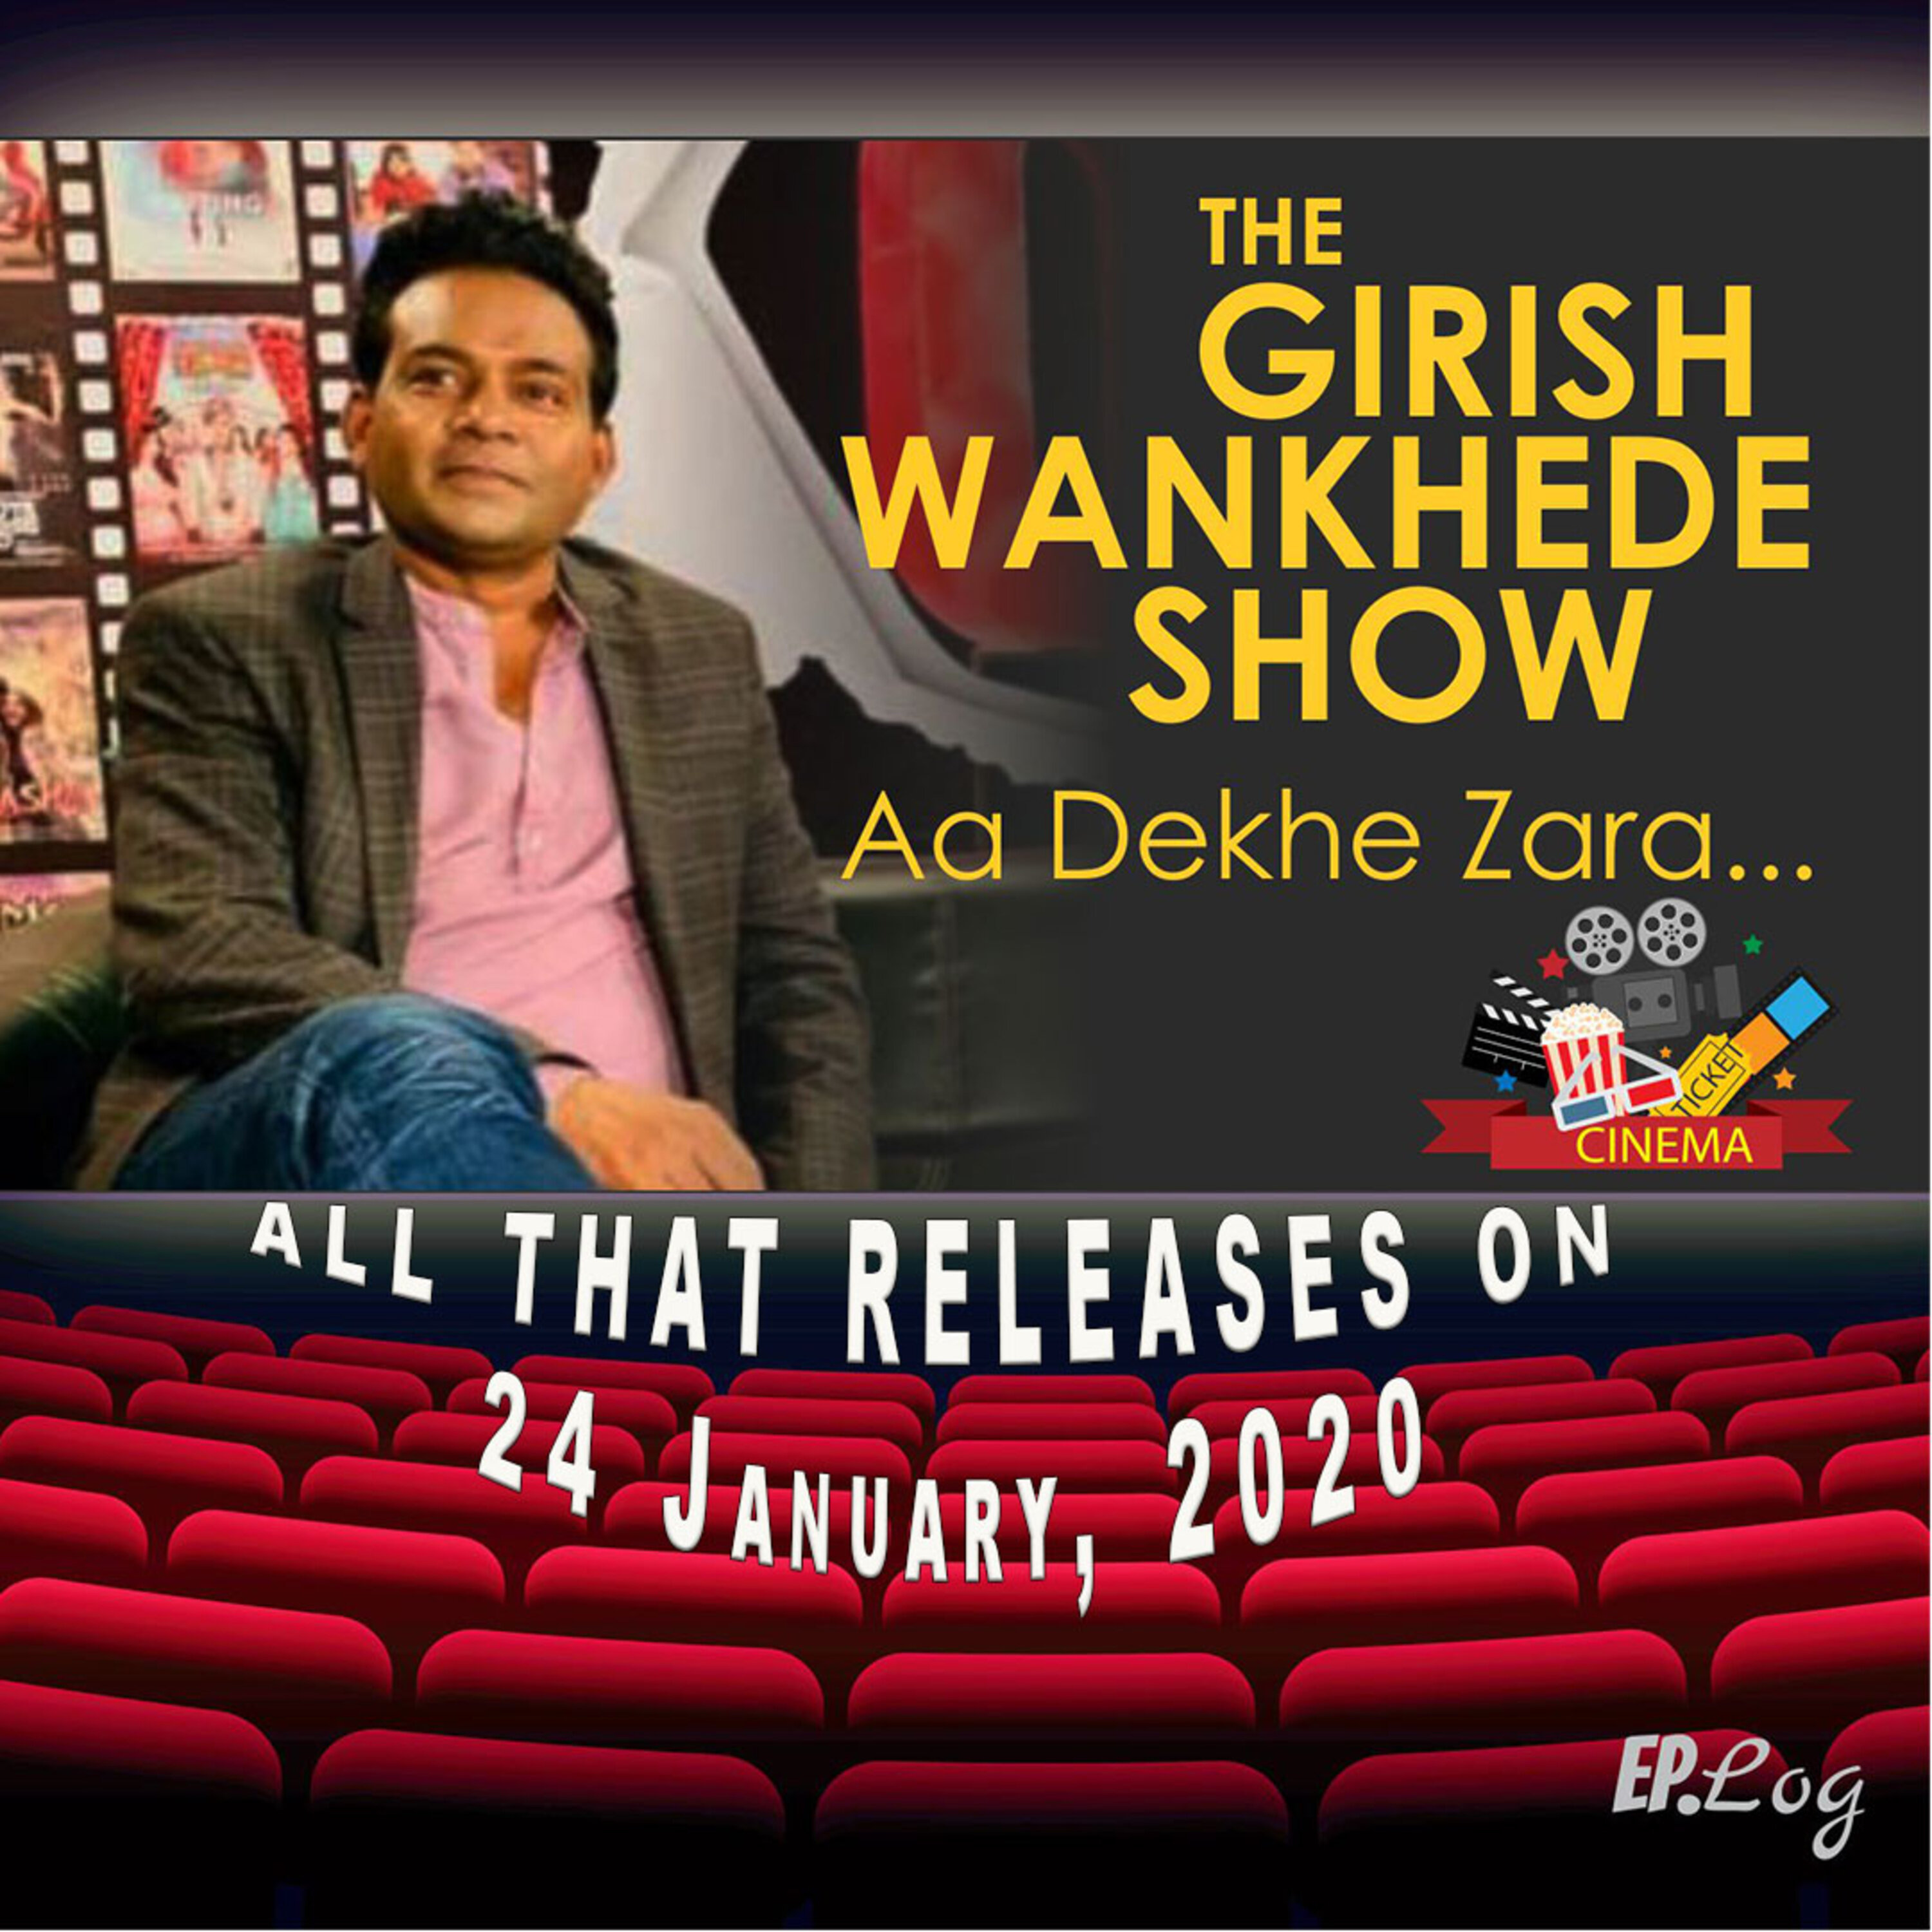 All That Releases on 24th January 2020 & Analysis